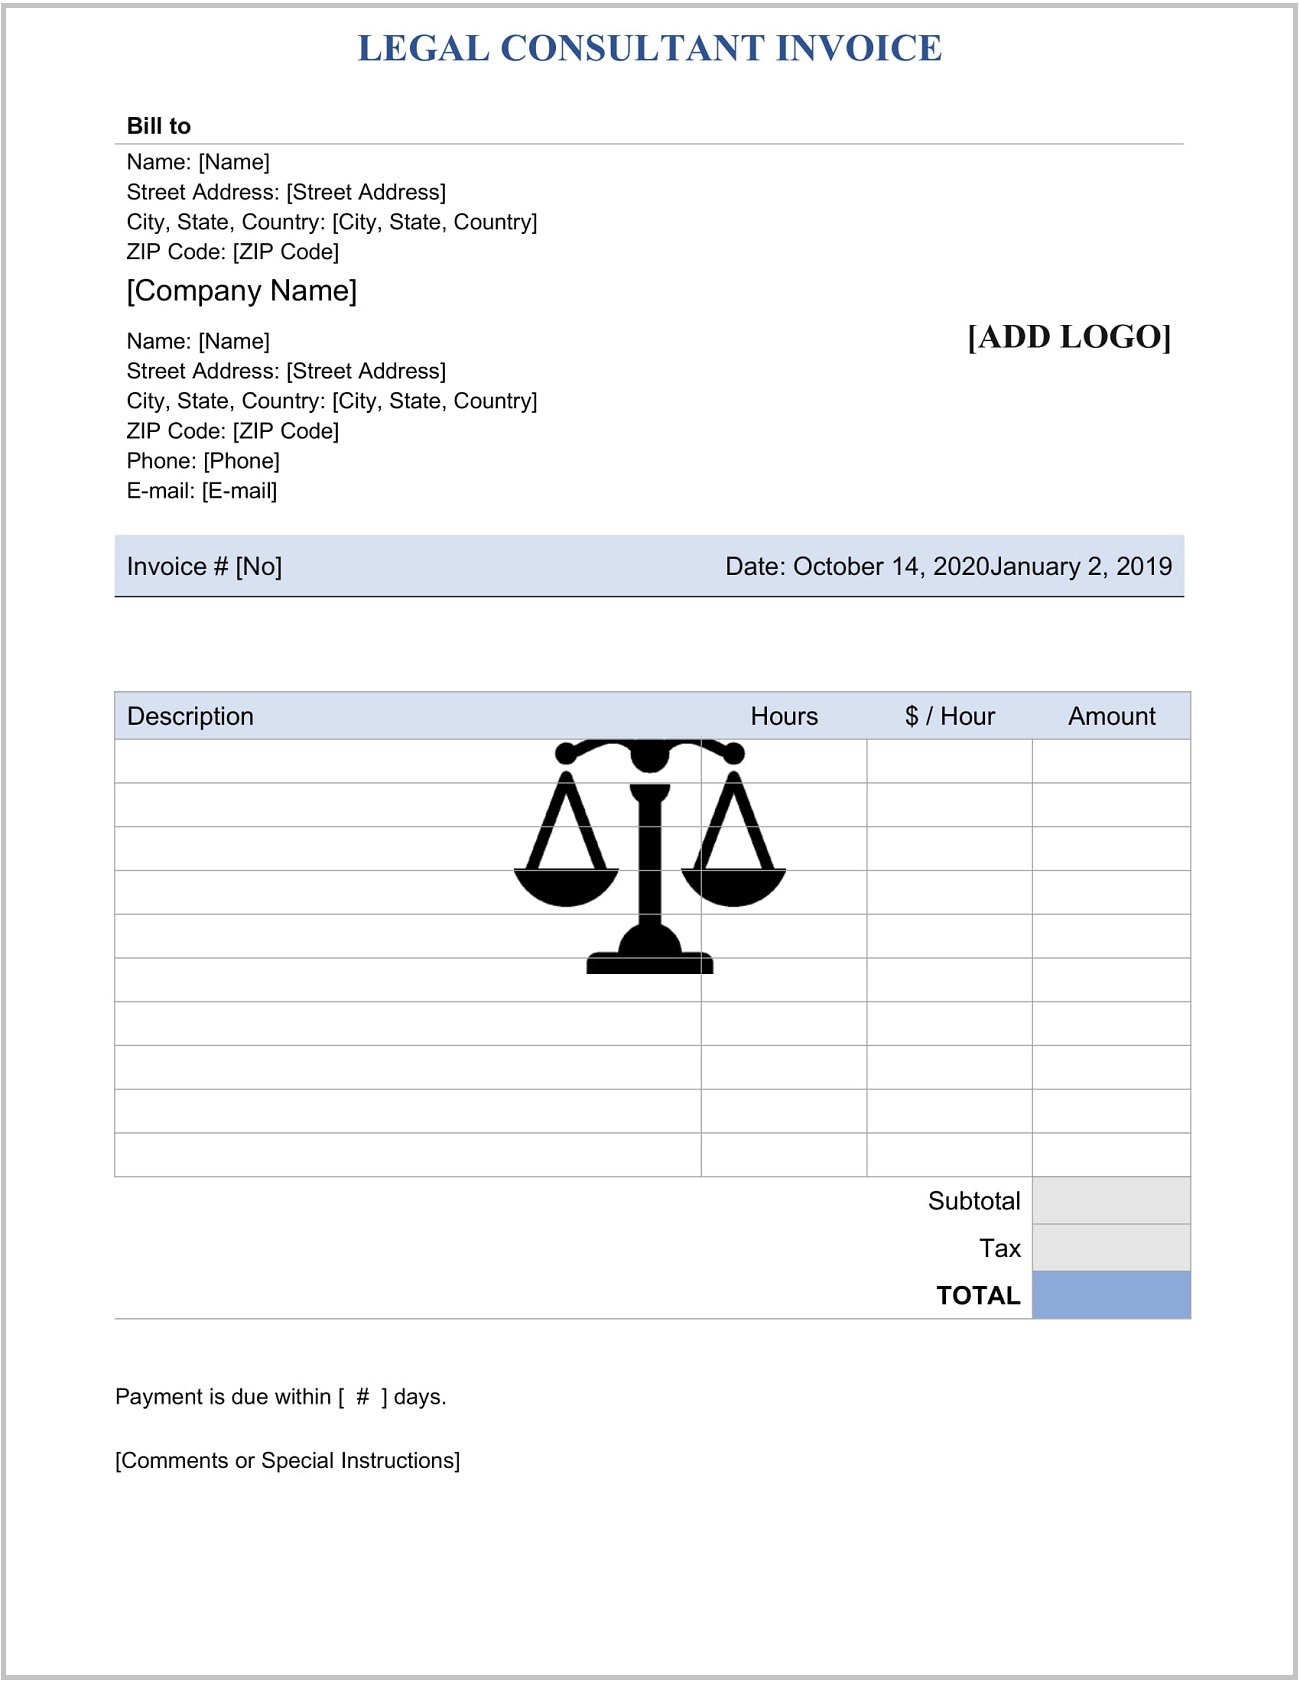 Legal Consultant Service Invoice Word Template